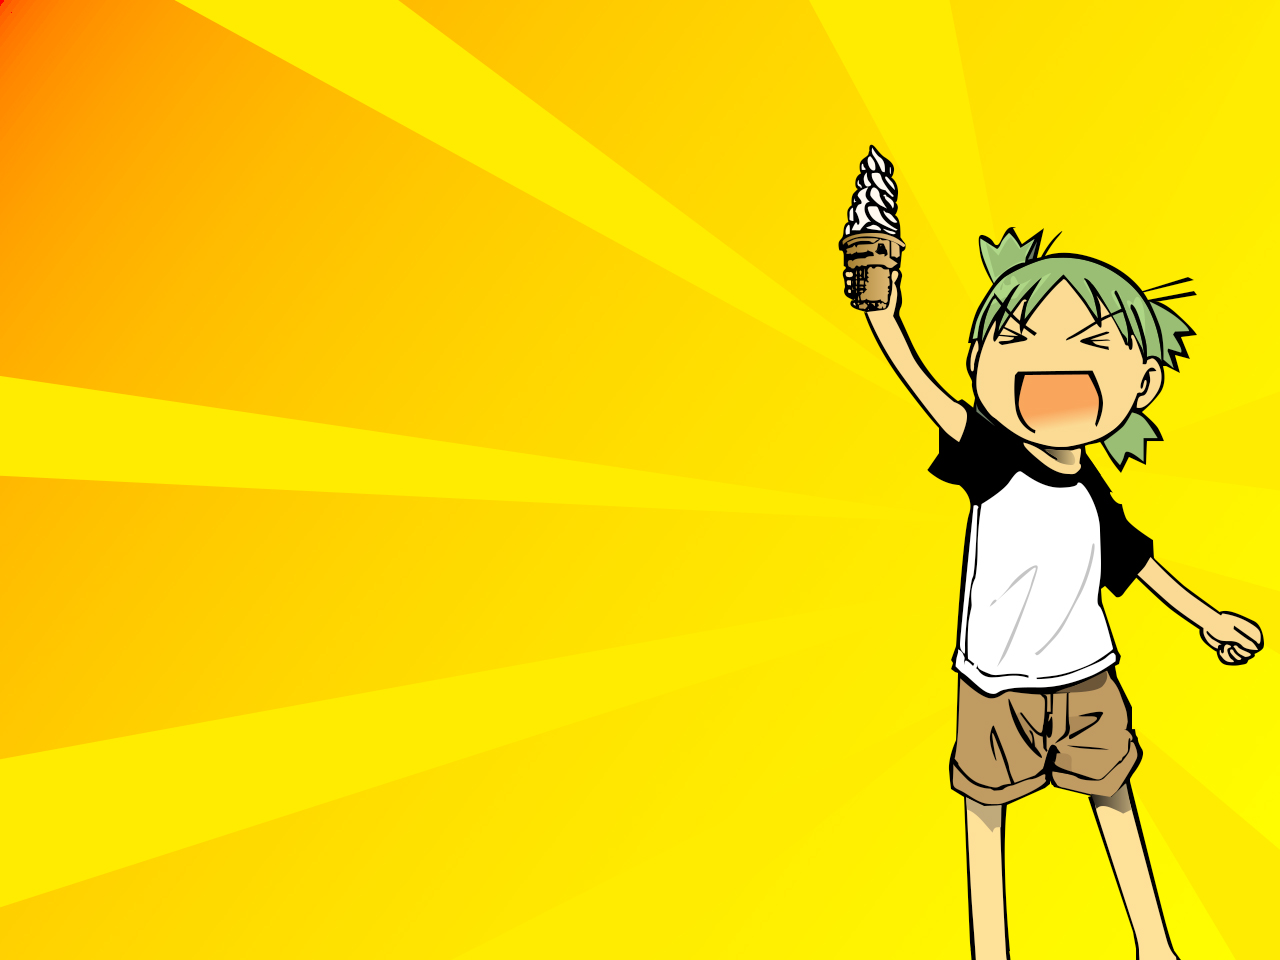 Anime Wallpapers Yotsuba&! HD 4K Download For Mobile iPhone & PC